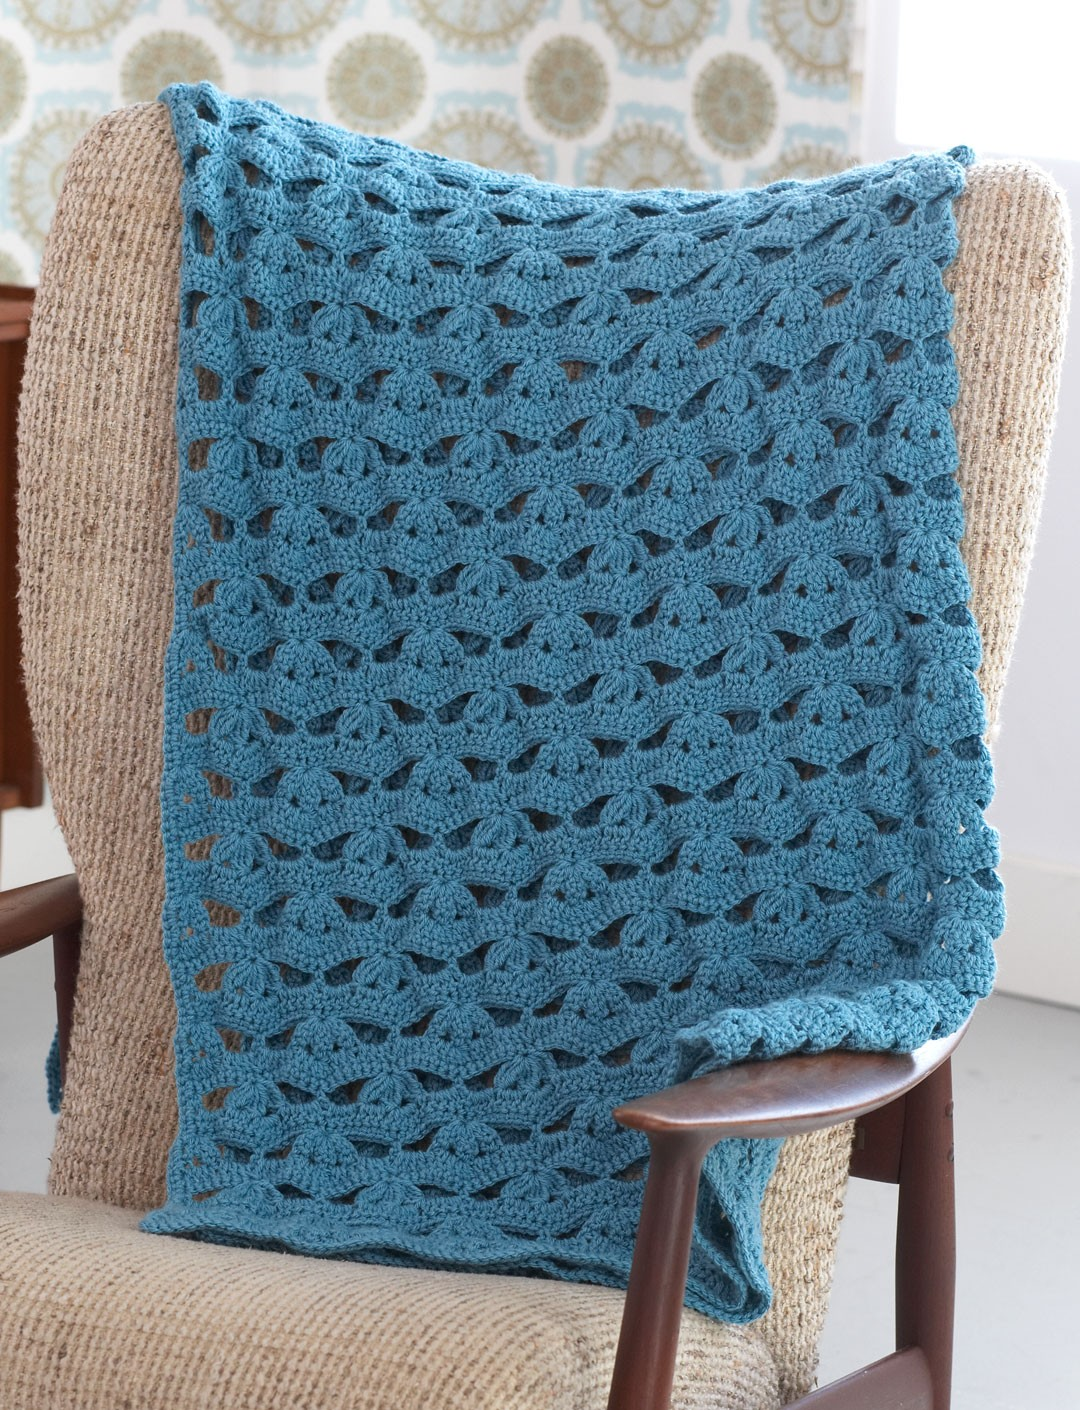 Caron Crochet Baby Blanket Pattern : Yarnspirations.com - Caron Open Lacy Throw - Patterns ...